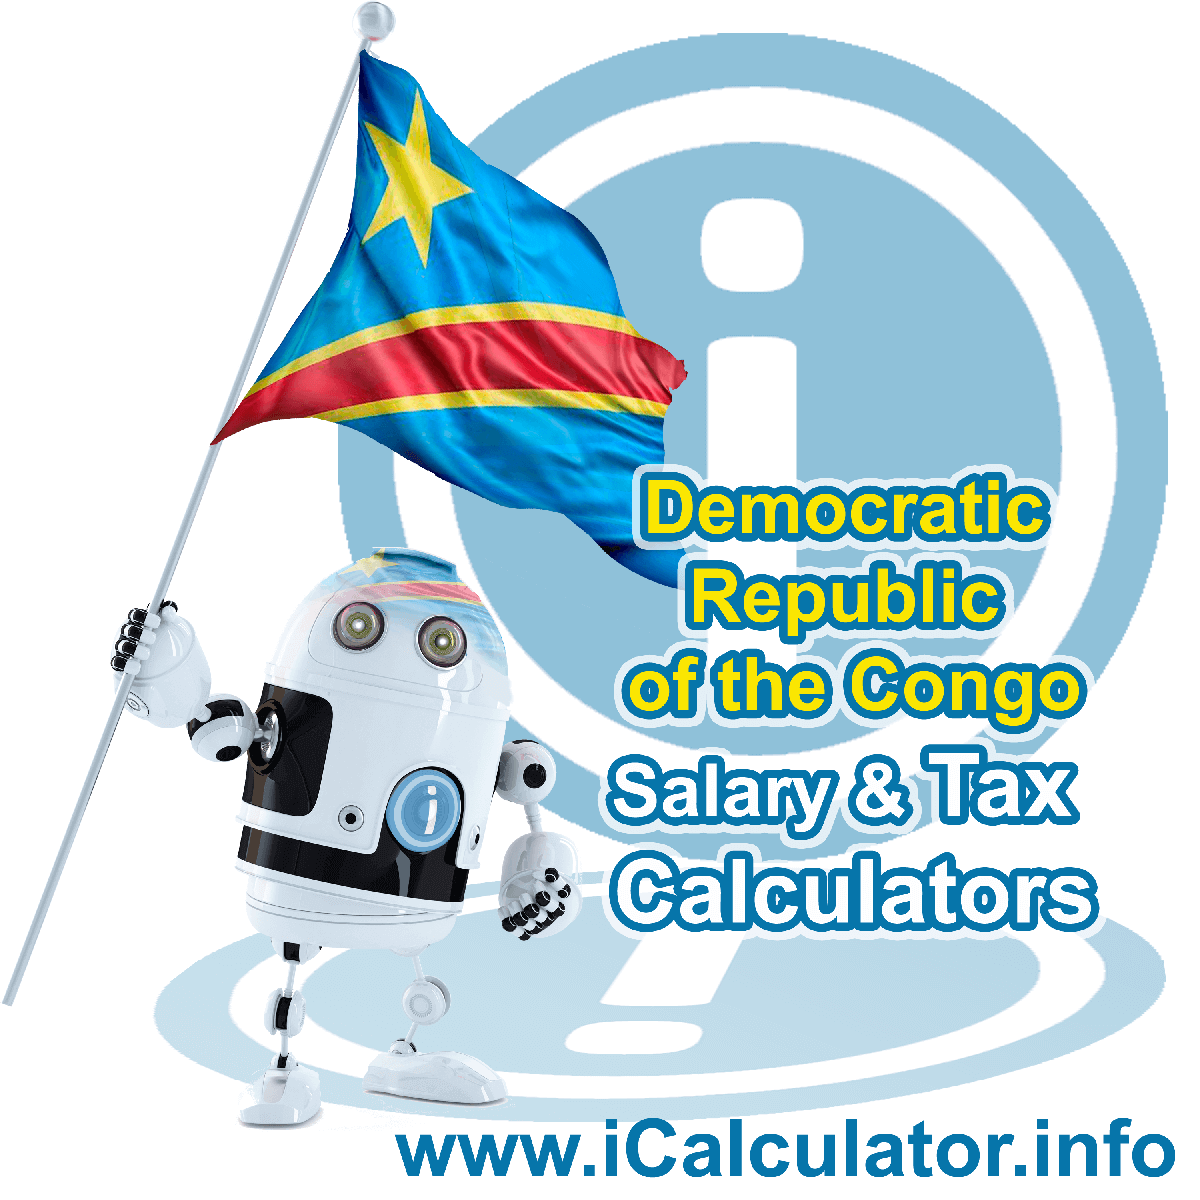 Democratic Republic Of The Congo Wage Calculator. This image shows the Democratic Republic Of The Congo flag and information relating to the tax formula for the Democratic Republic Of The Congo Tax Calculator